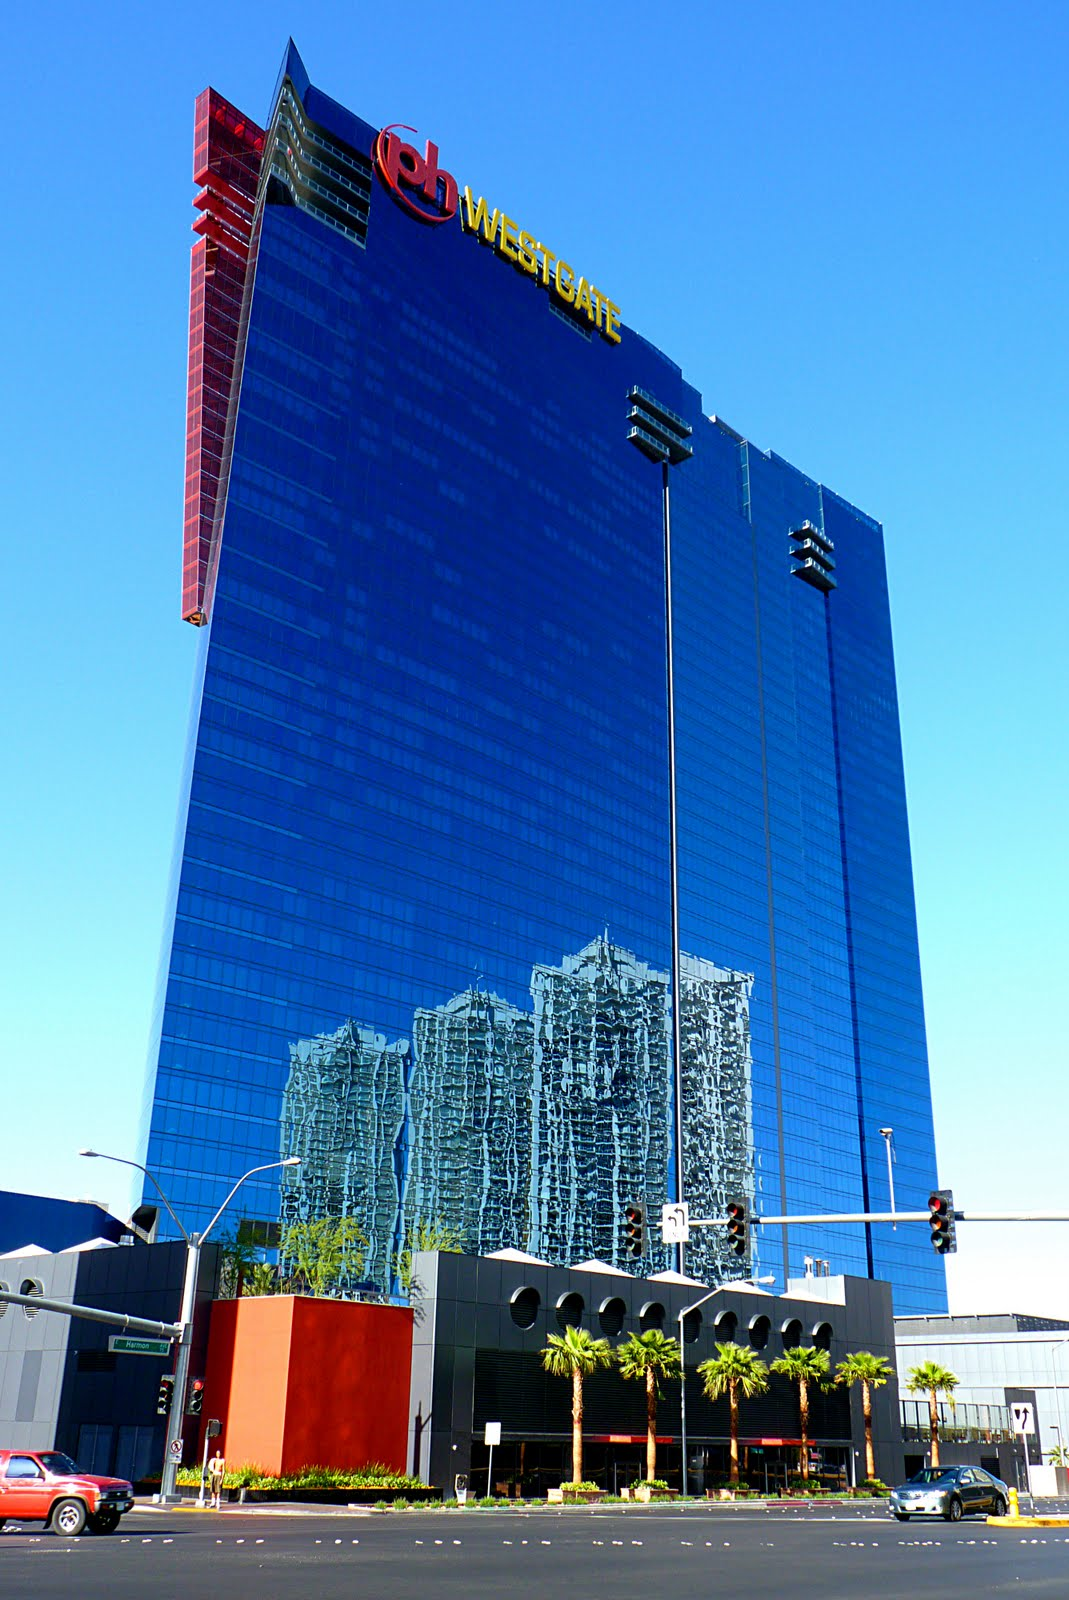 Planet Hollywood Towers - CLOSED - 224 Photos - Hotels ... |Planet Hollywood Westgate